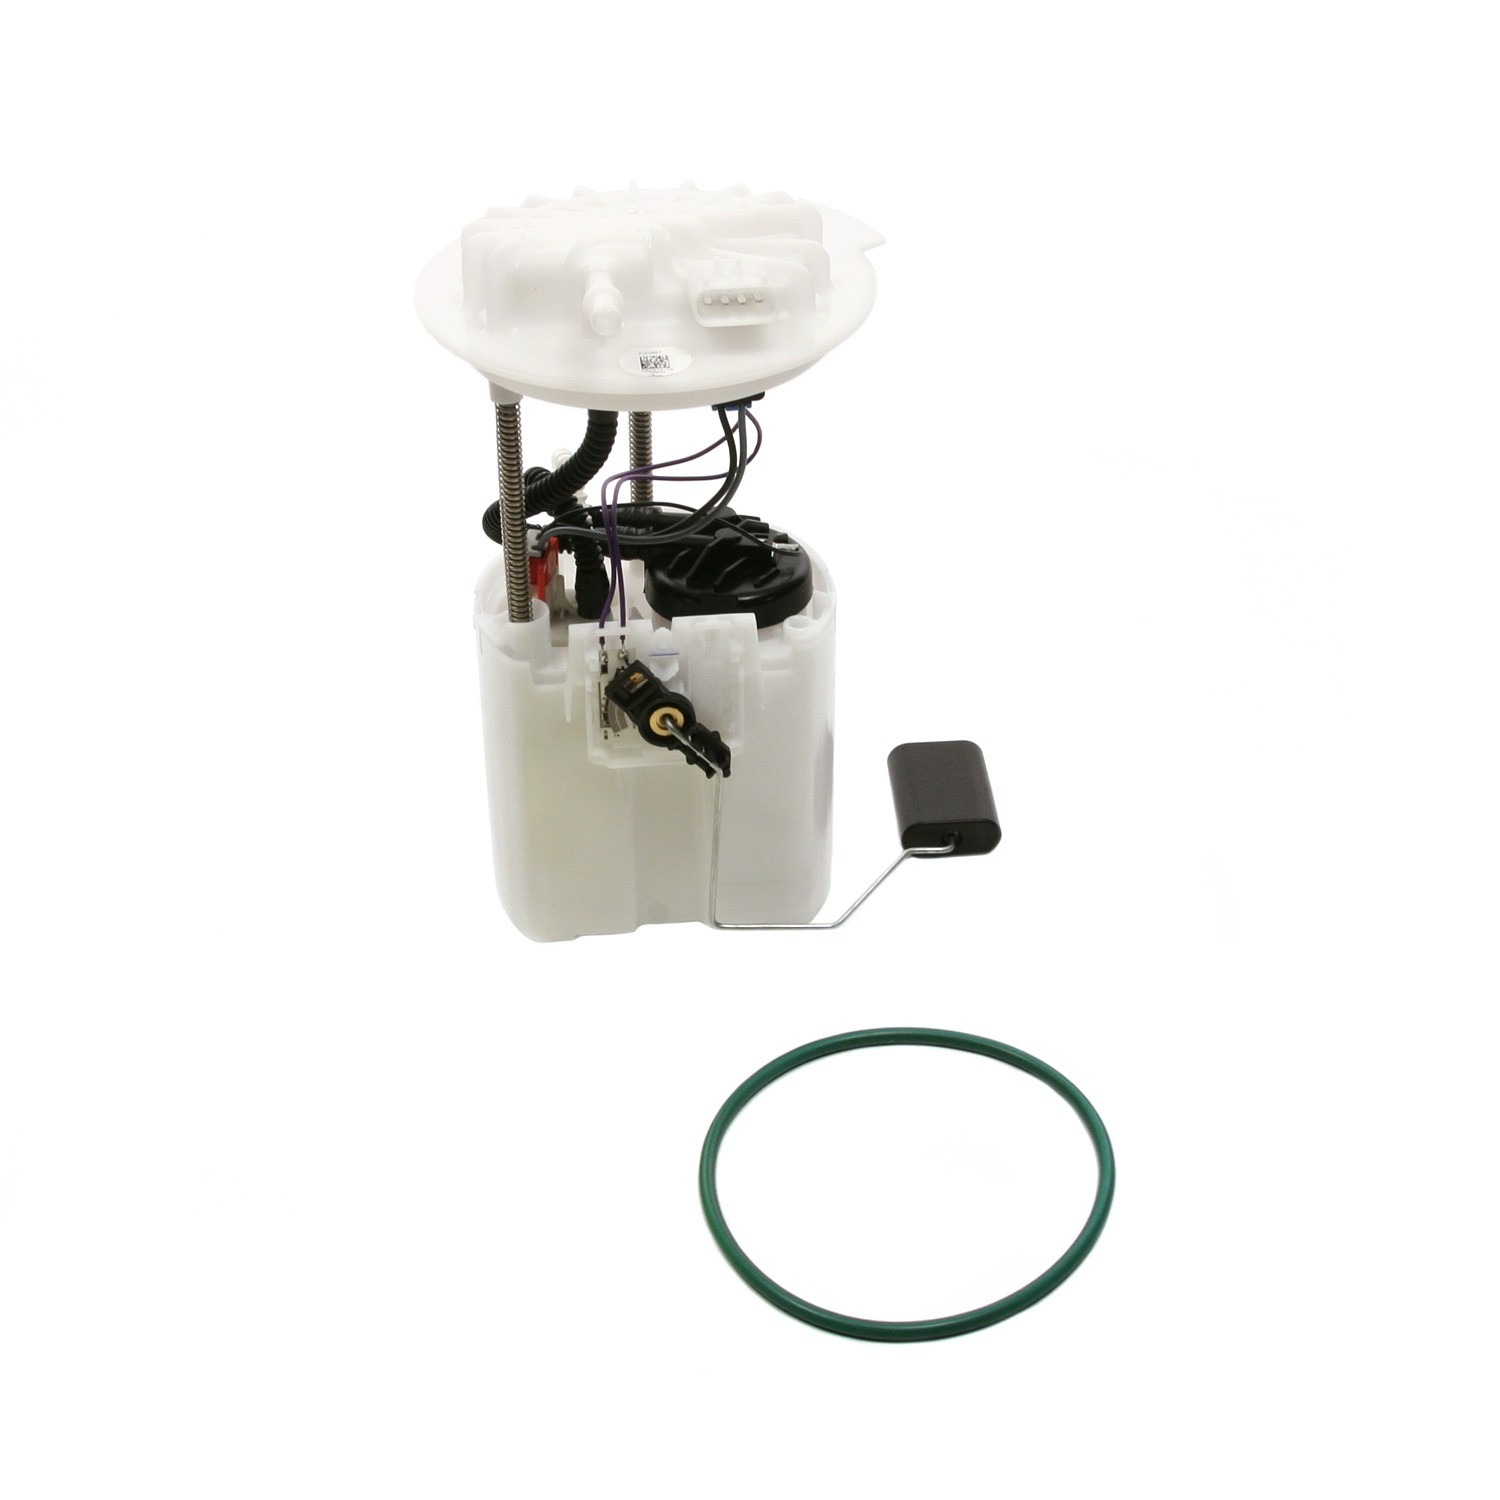 2010 Chrysler Town And Country Fuel Filter Wiring Library Pump Module Assembly De Fg0887